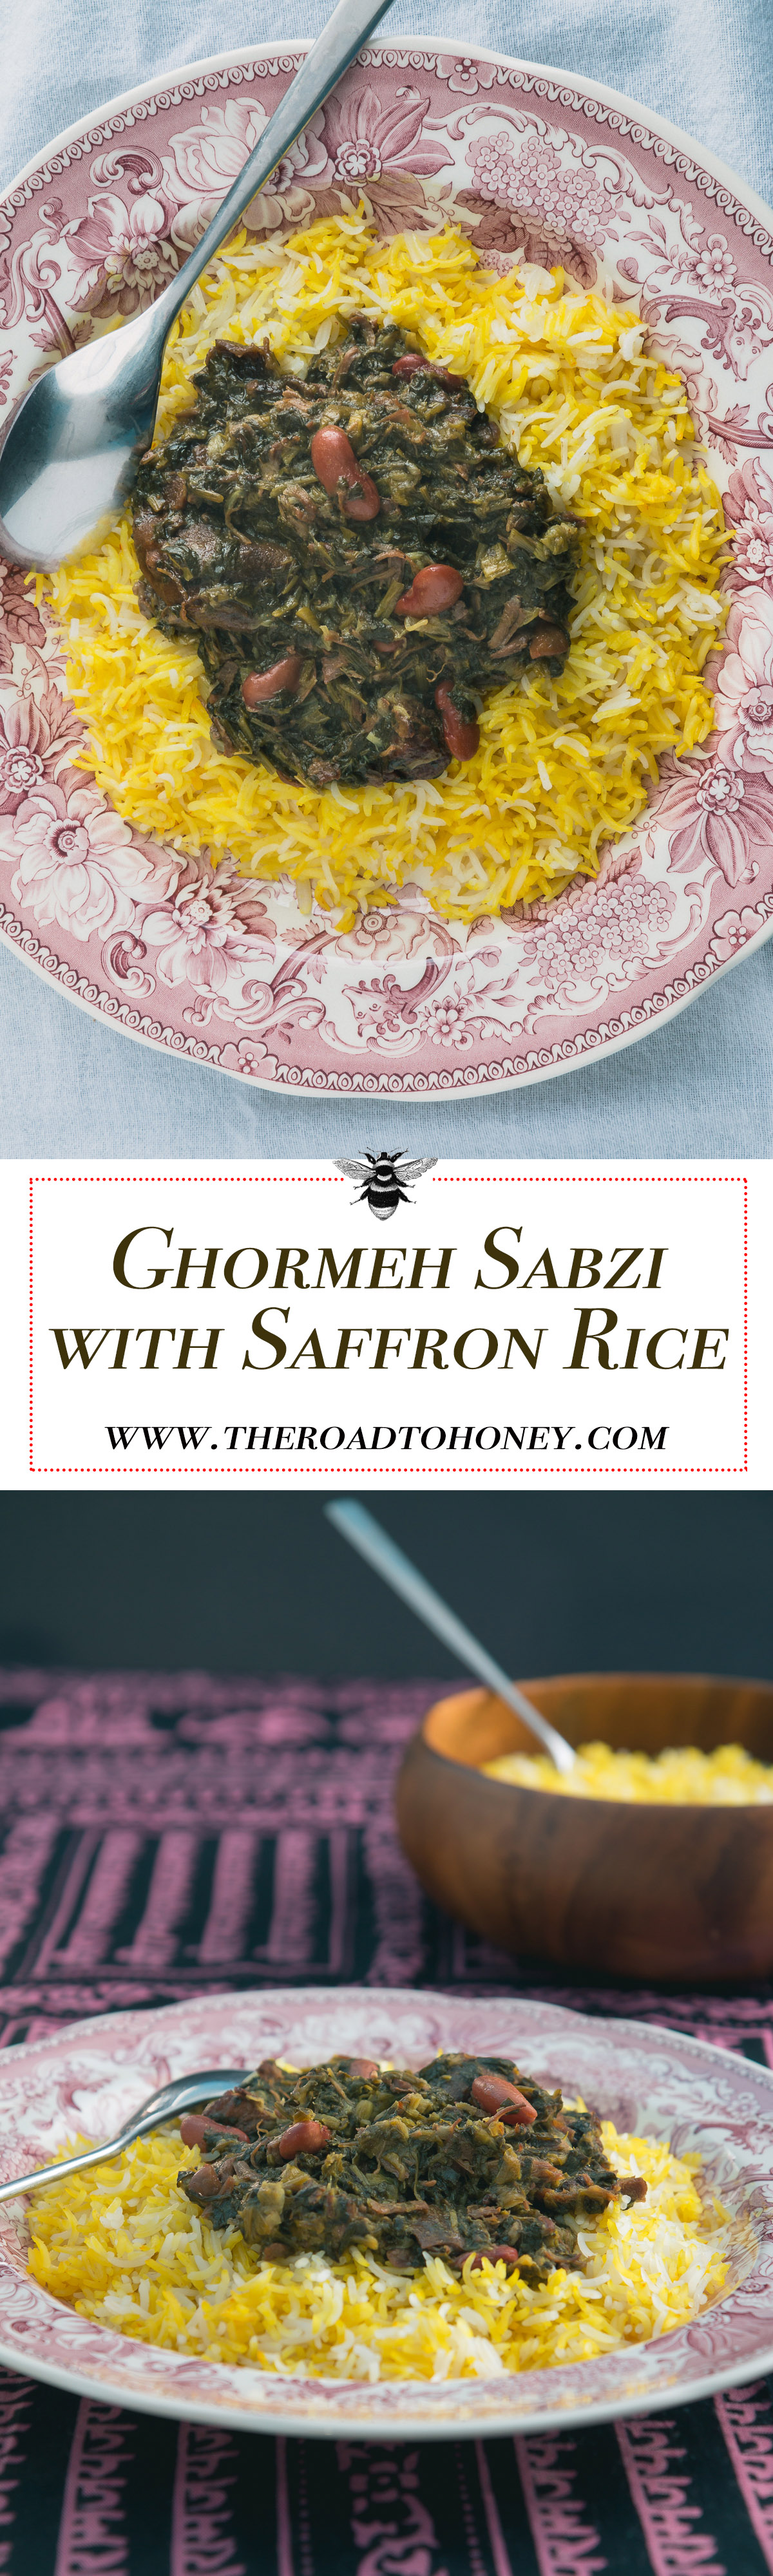 Ghormeh sabzi with saffron rice & tahdig (crispy rice) is an Middle Eastern herb stew popular in Iran. It's made with parsley, fenugreek, dried limes, kidney beans and lamb and served over basmati rice.